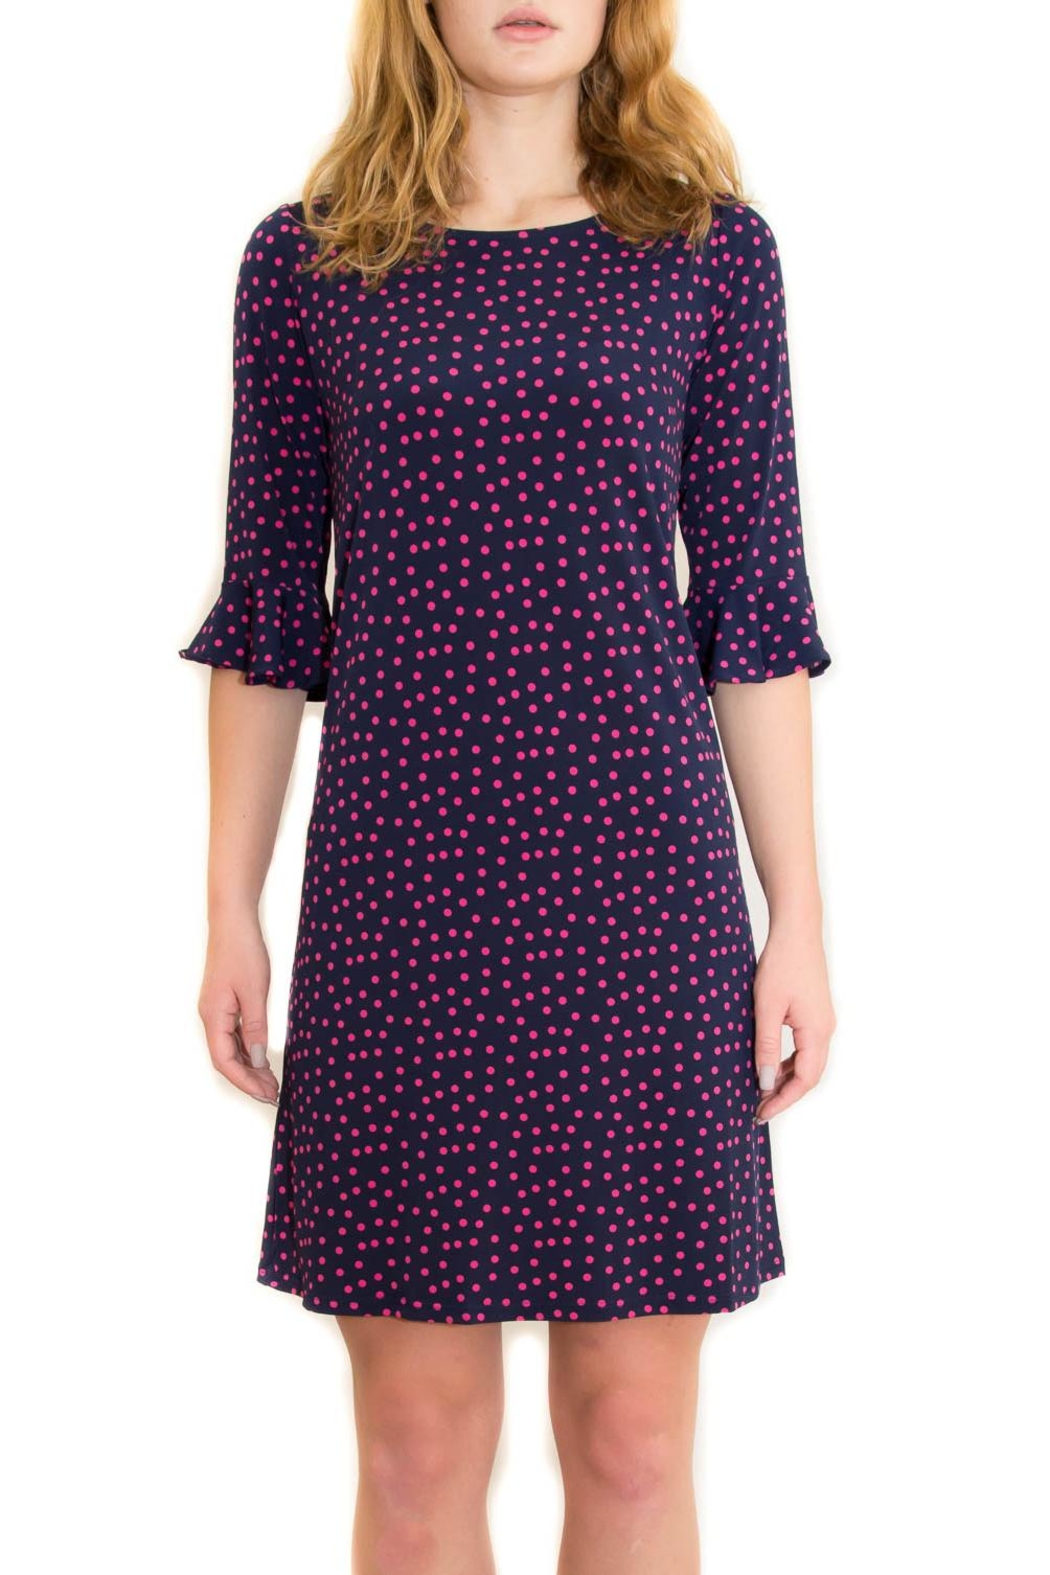 Leota Poka Dot Dress - Main Image